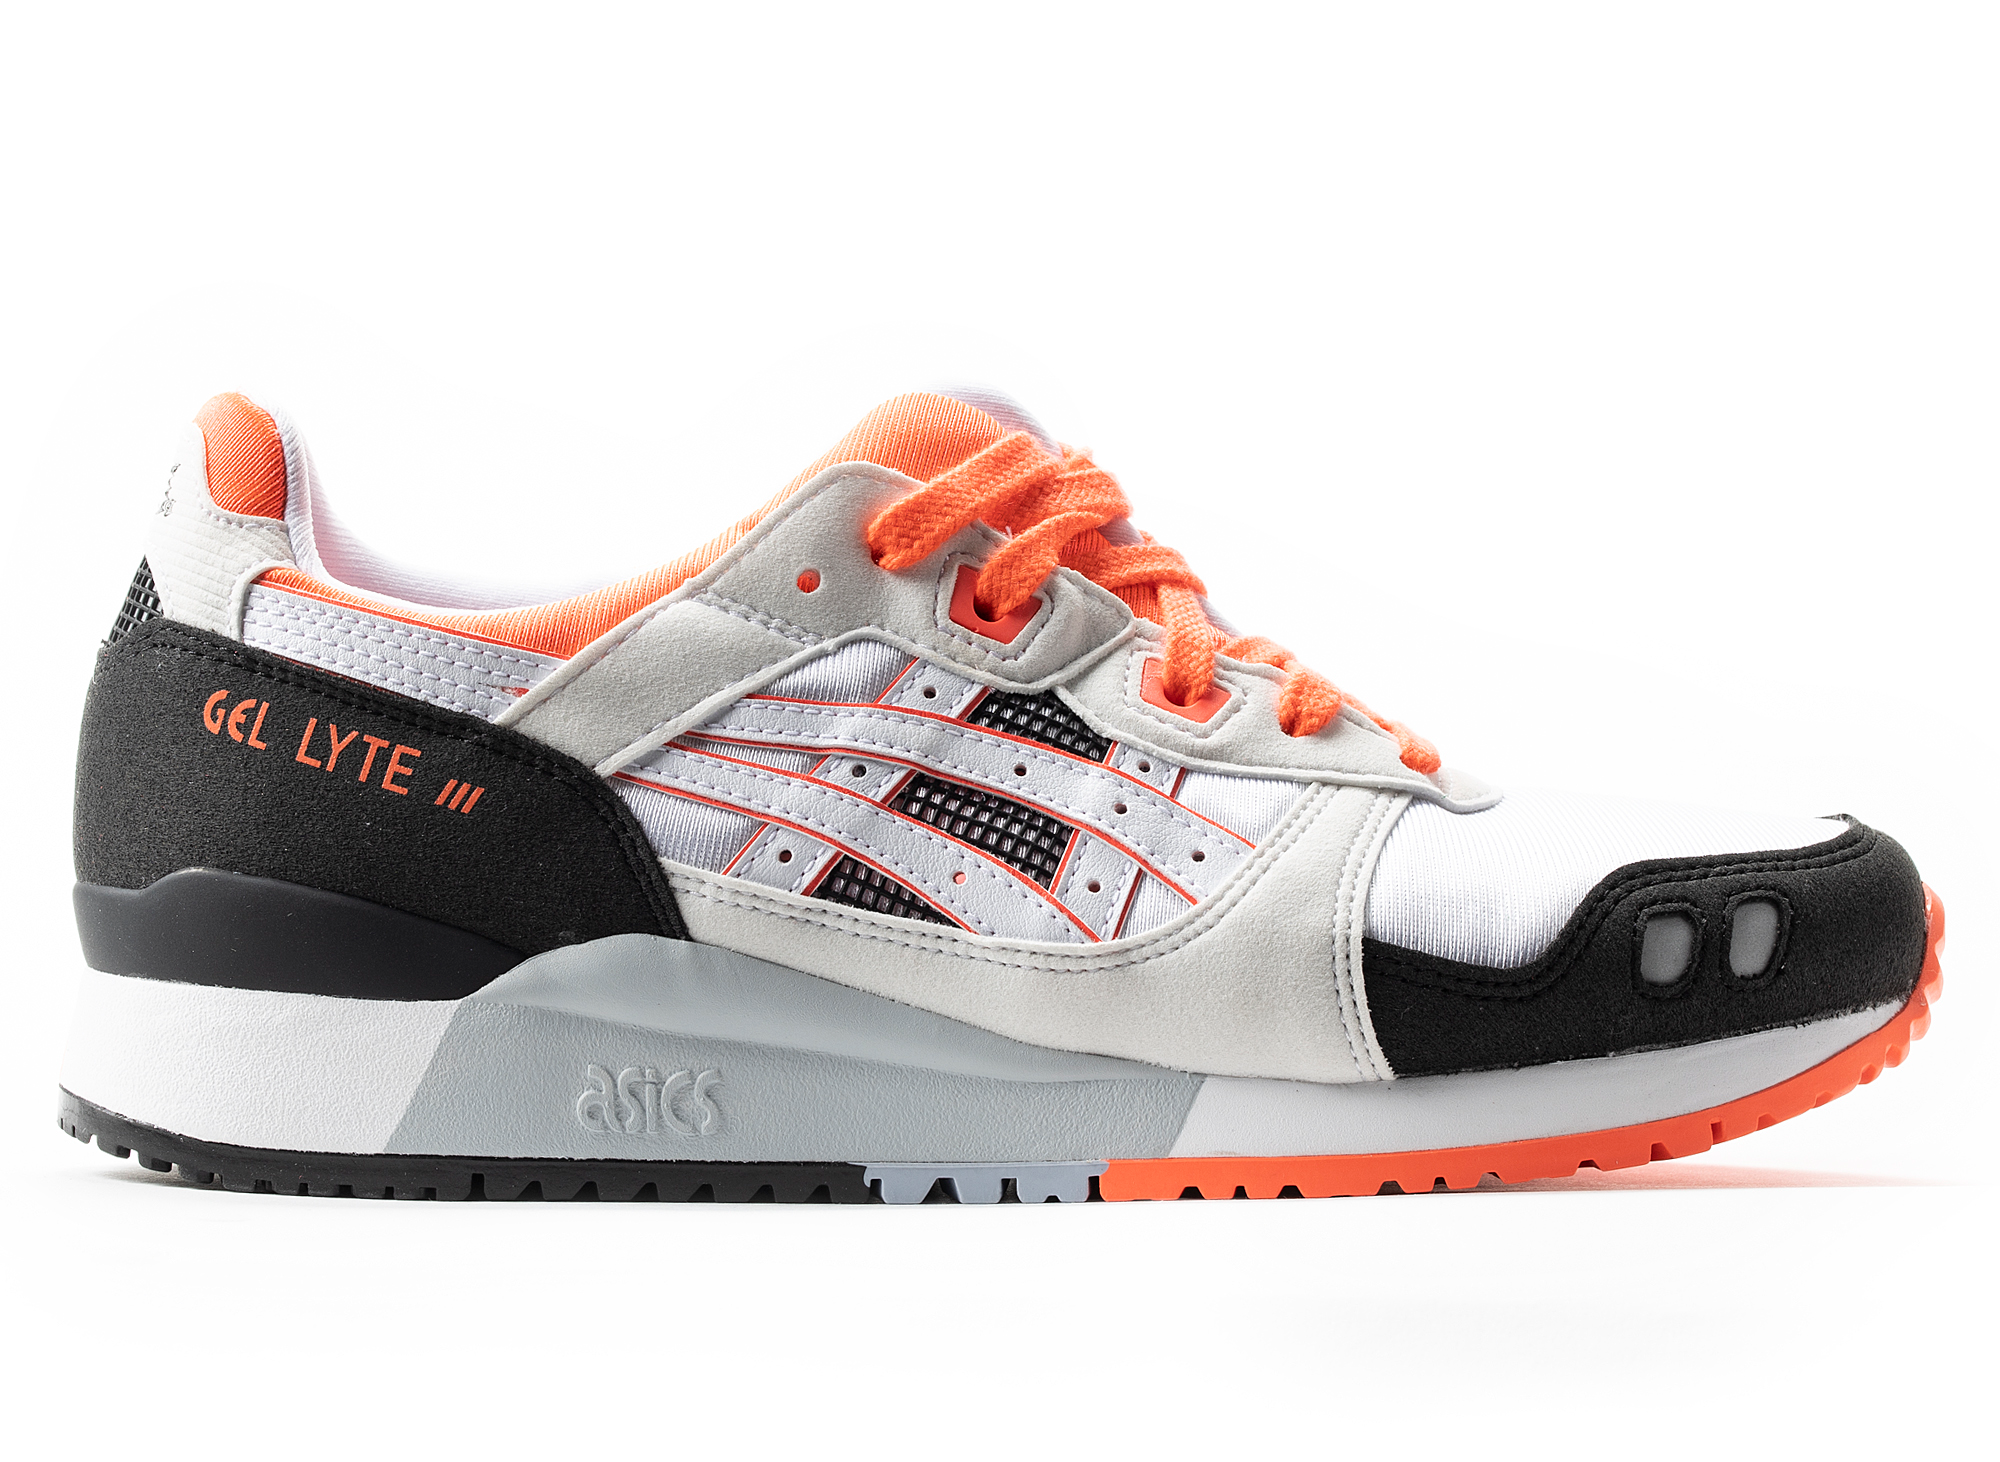 Asics Gel-Lyte 3 OG 'Flash Coral'